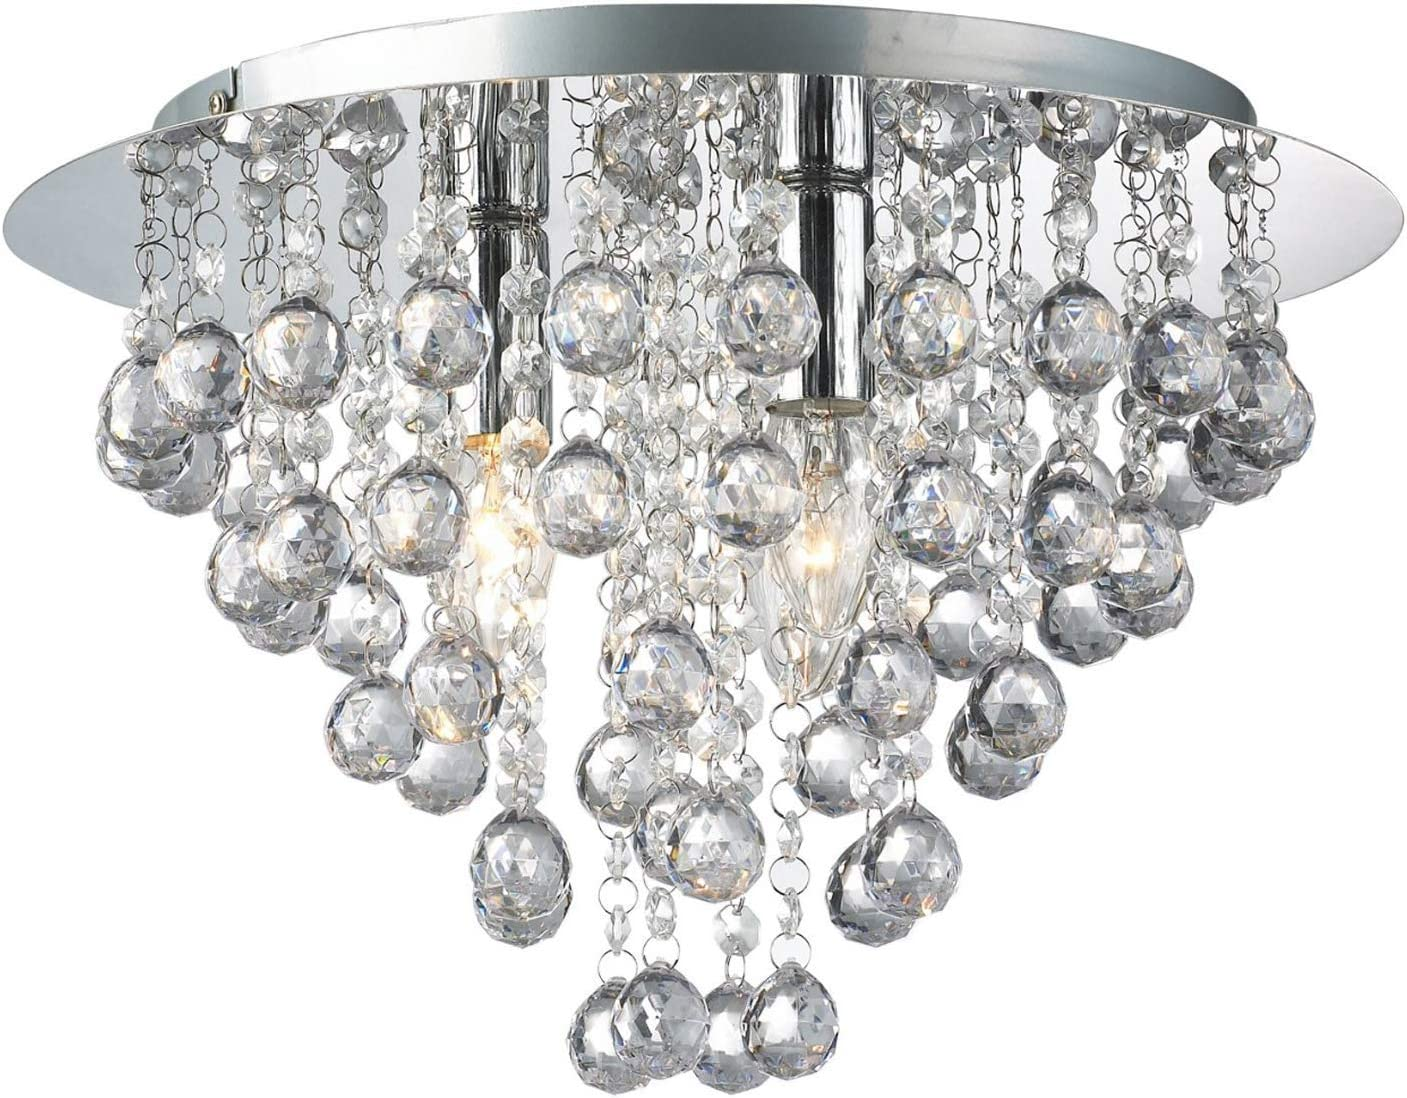 Modern Spiral Chandelier with Faux Crystal Beaded for Wedding Chandeliers Centerpieces Hallway Decorations and Any Event Party Decor 47 High x 8.5 Diameter